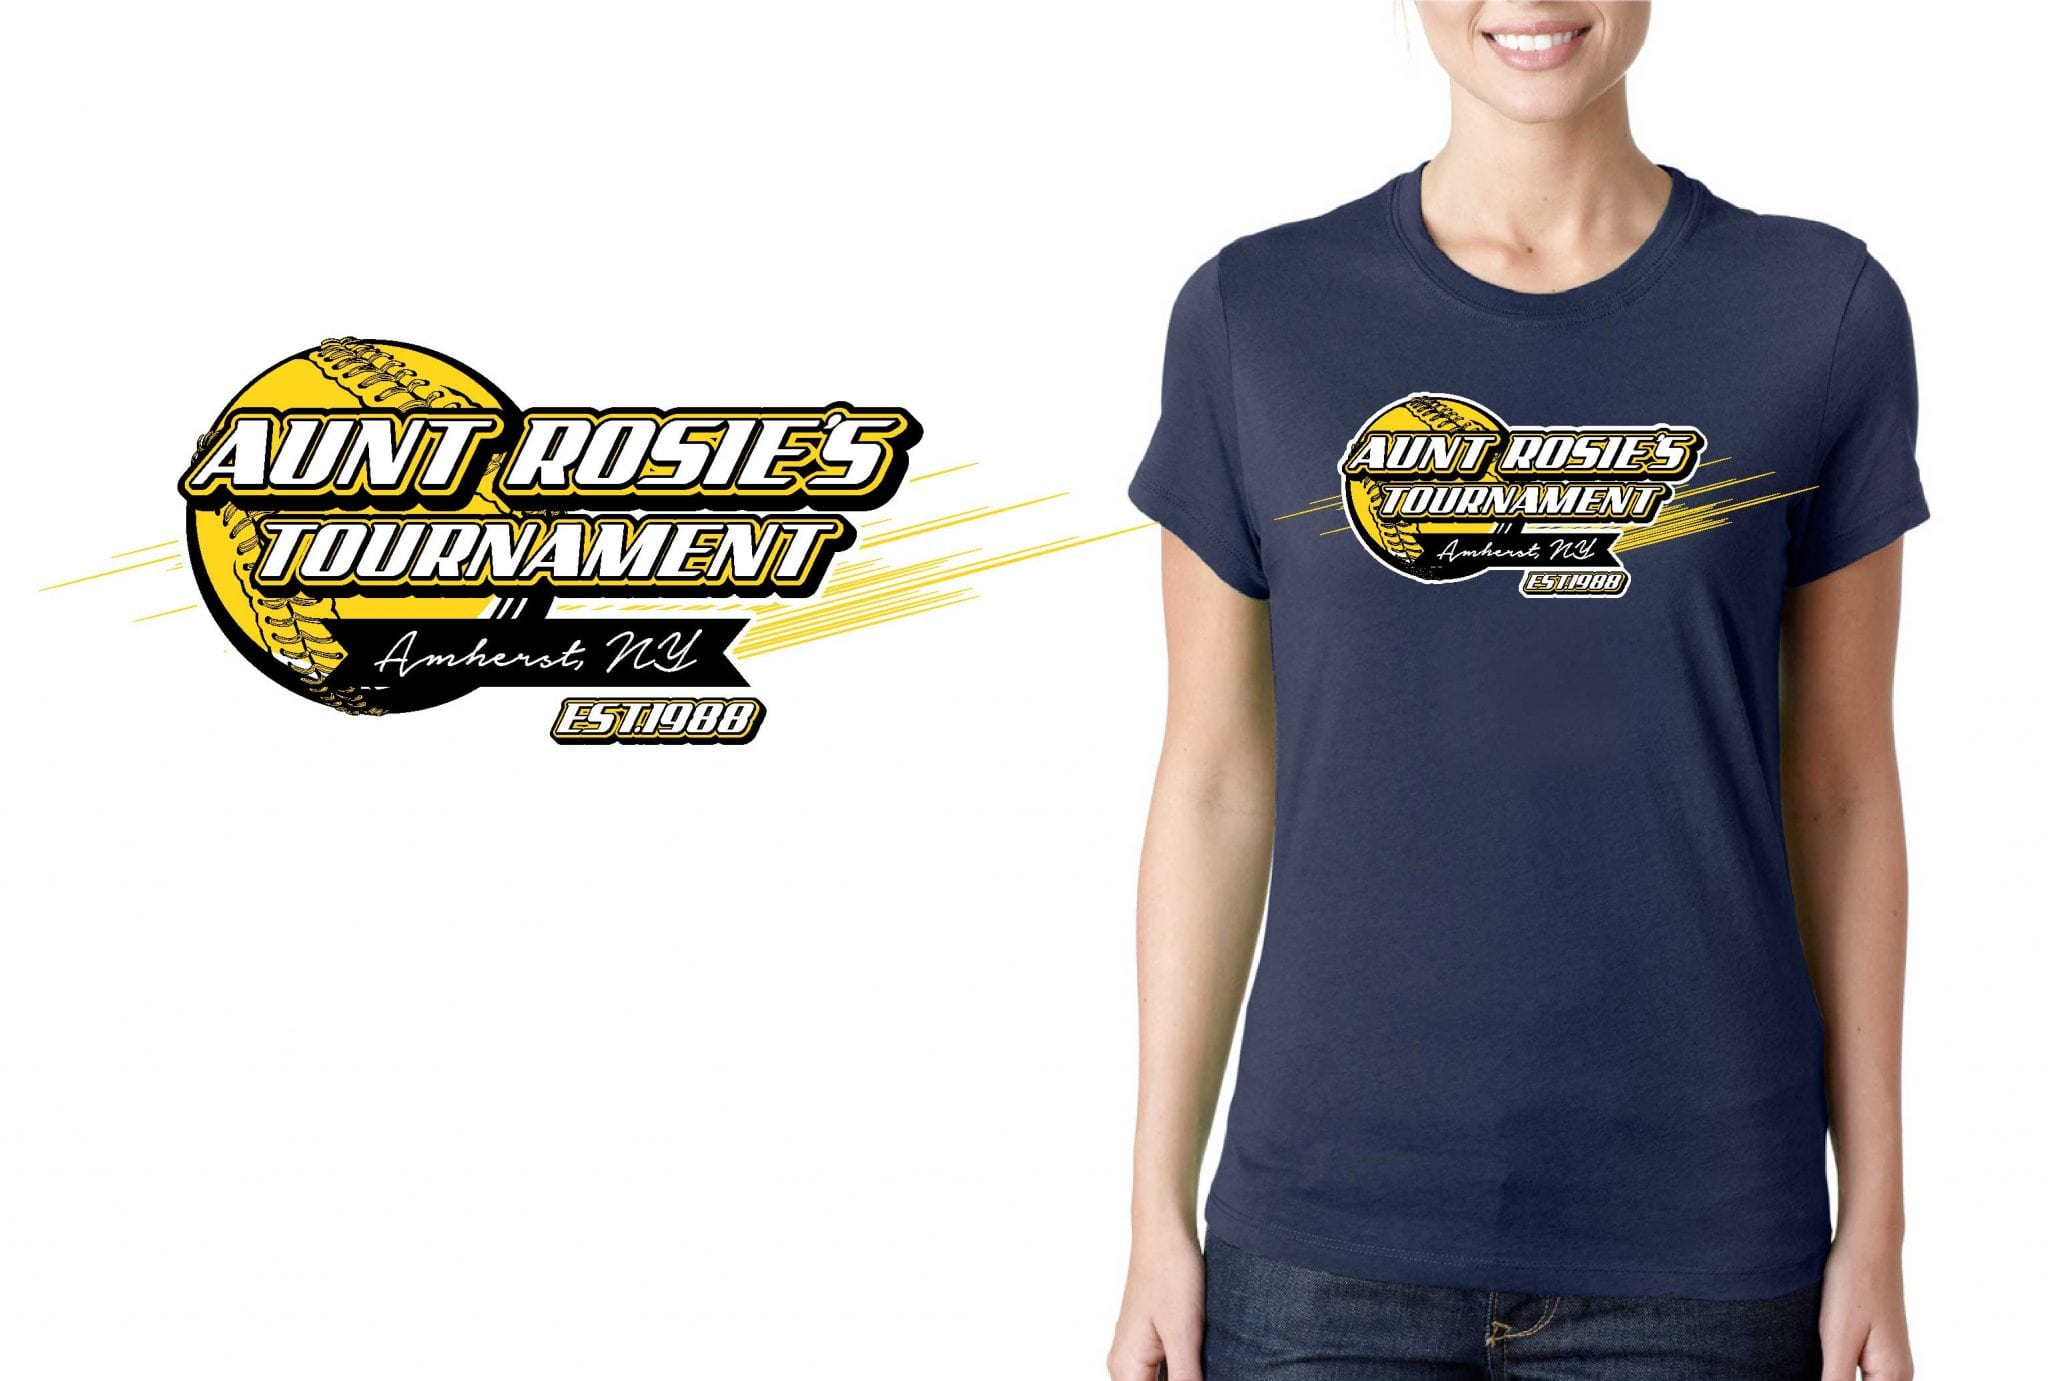 LOGO for Aunt Rosies International Fast Pitch Softball Tournament T-SHIRT UrArtStudio